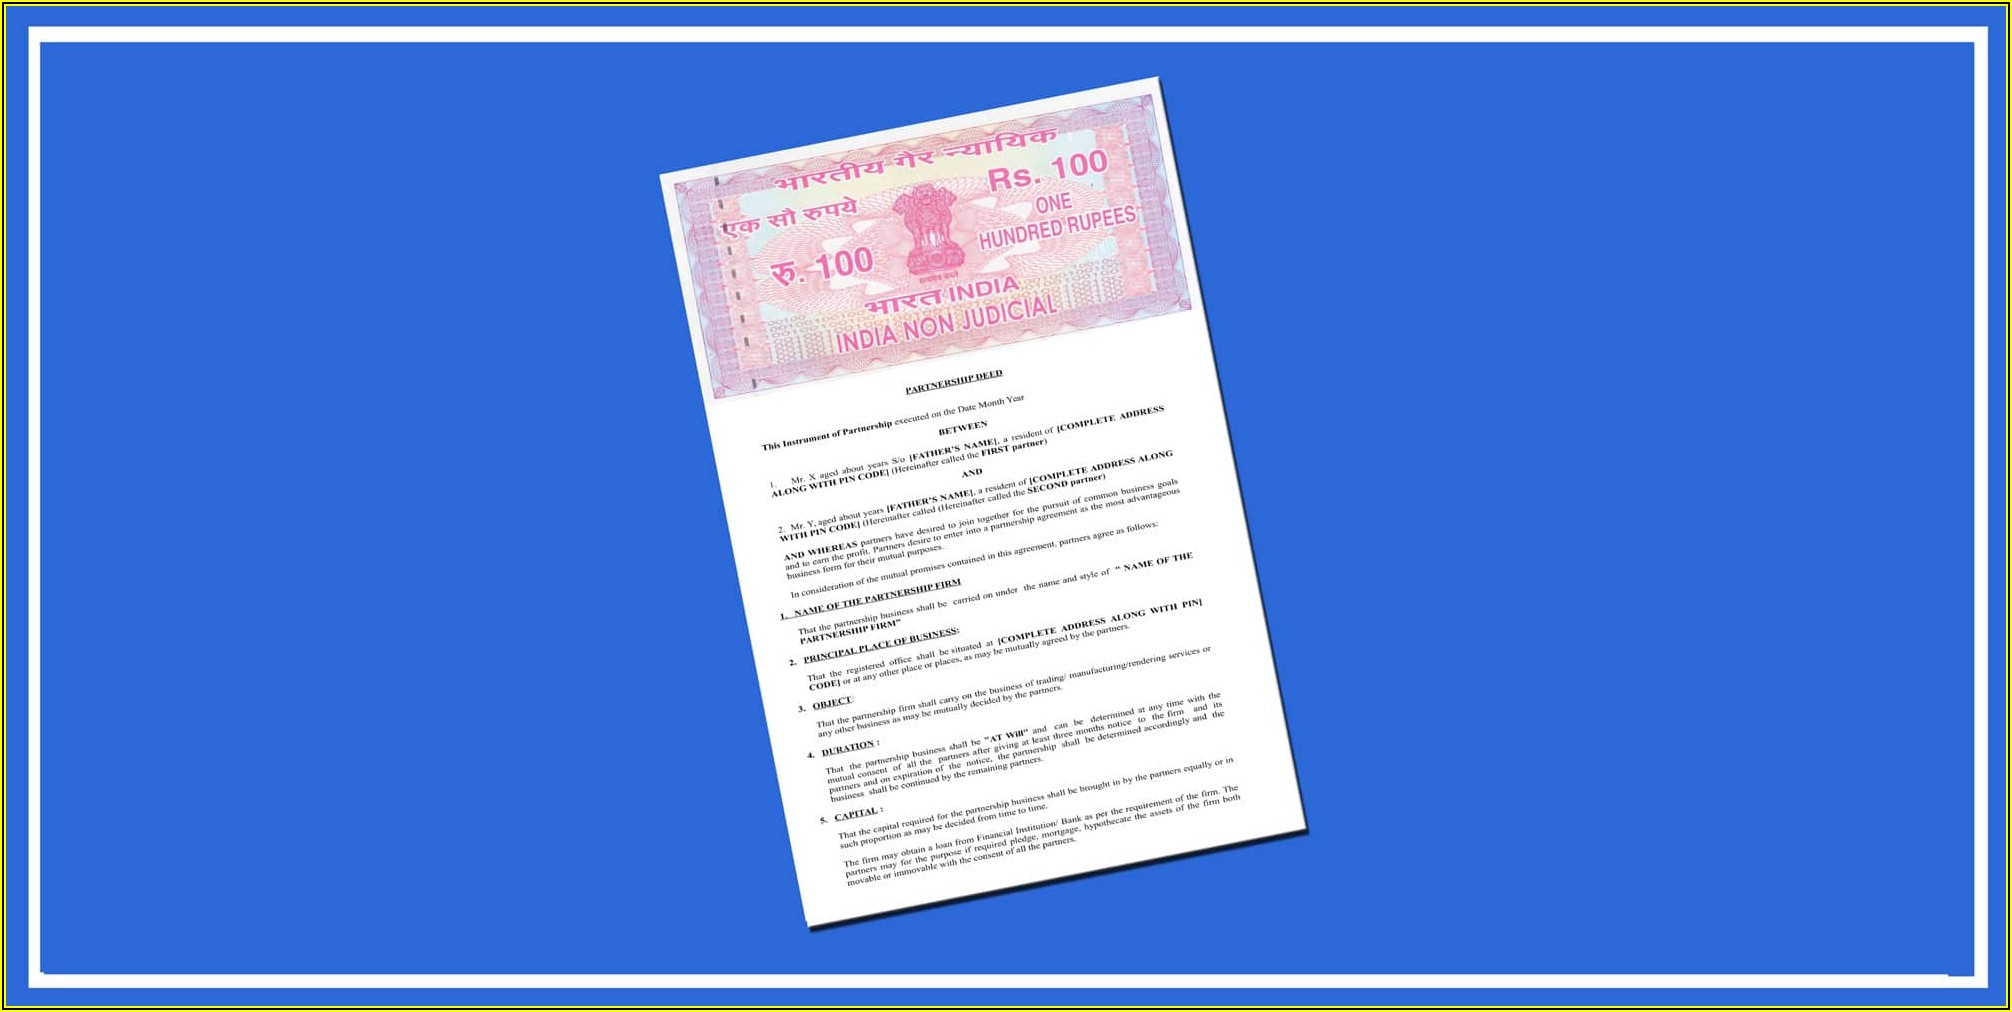 Law Firm Partnership Deed Format